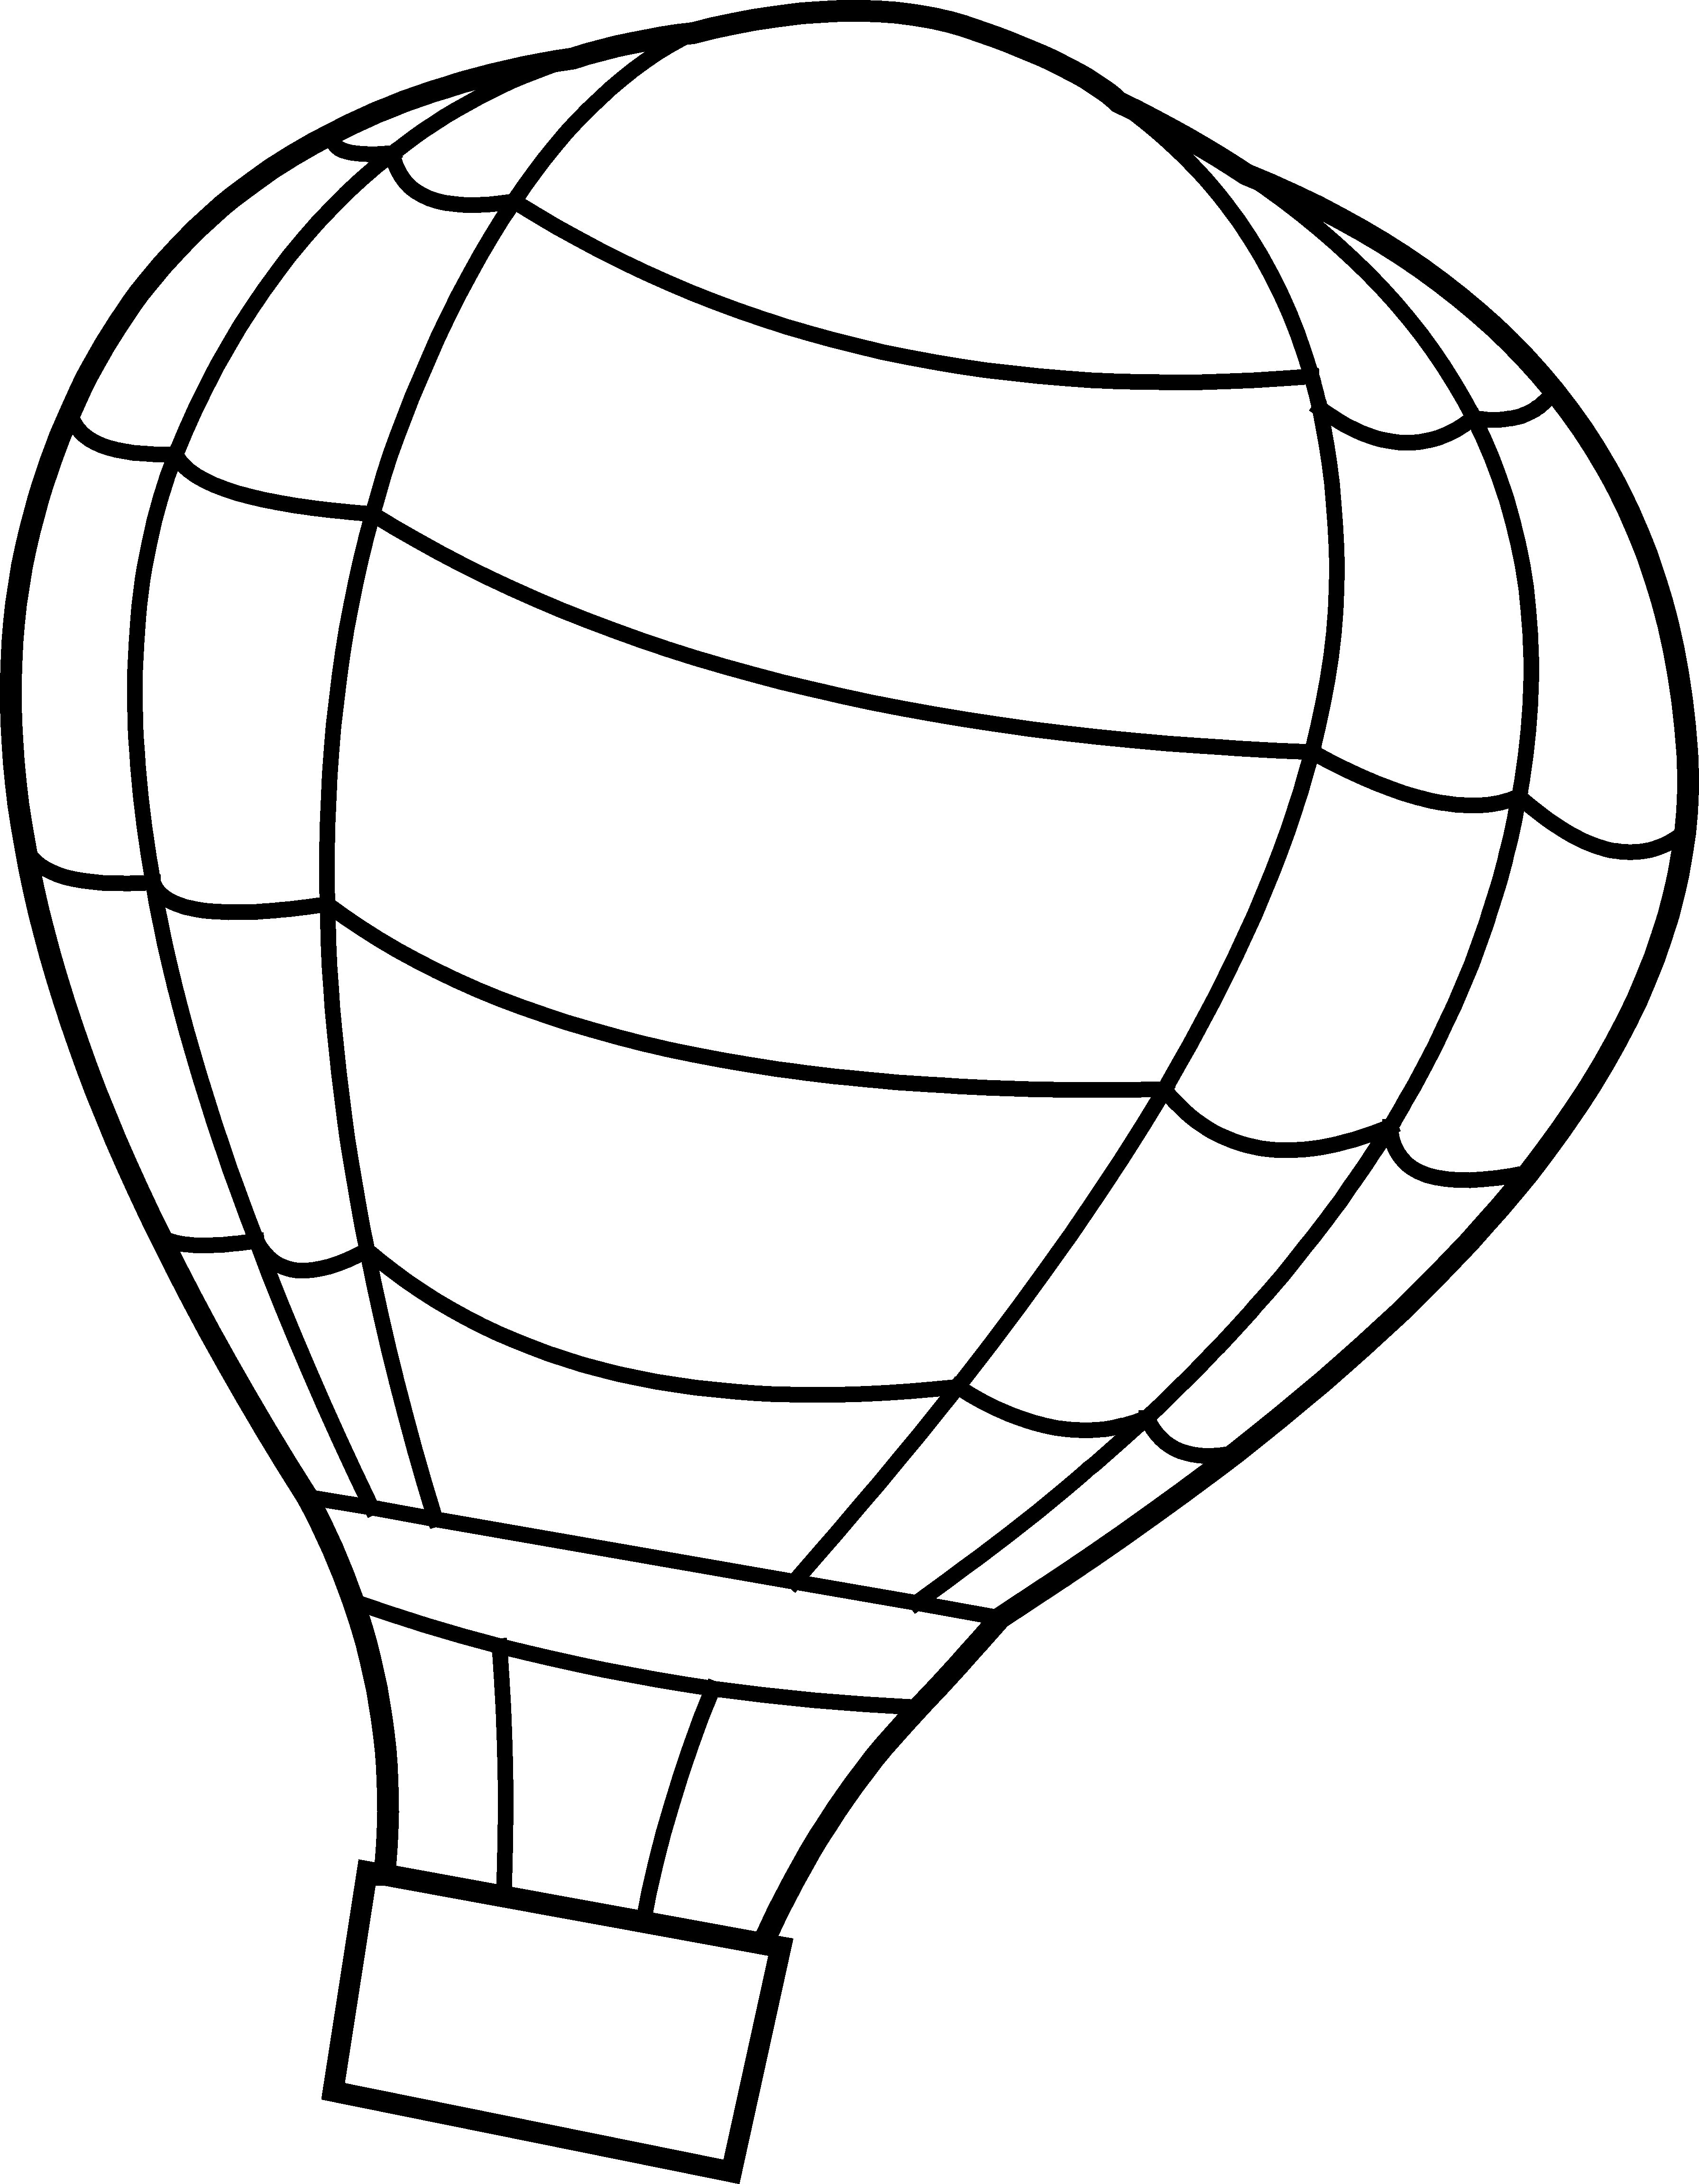 3583x4606 Great Hot Air Balloon Template Printable Home Design Gallery